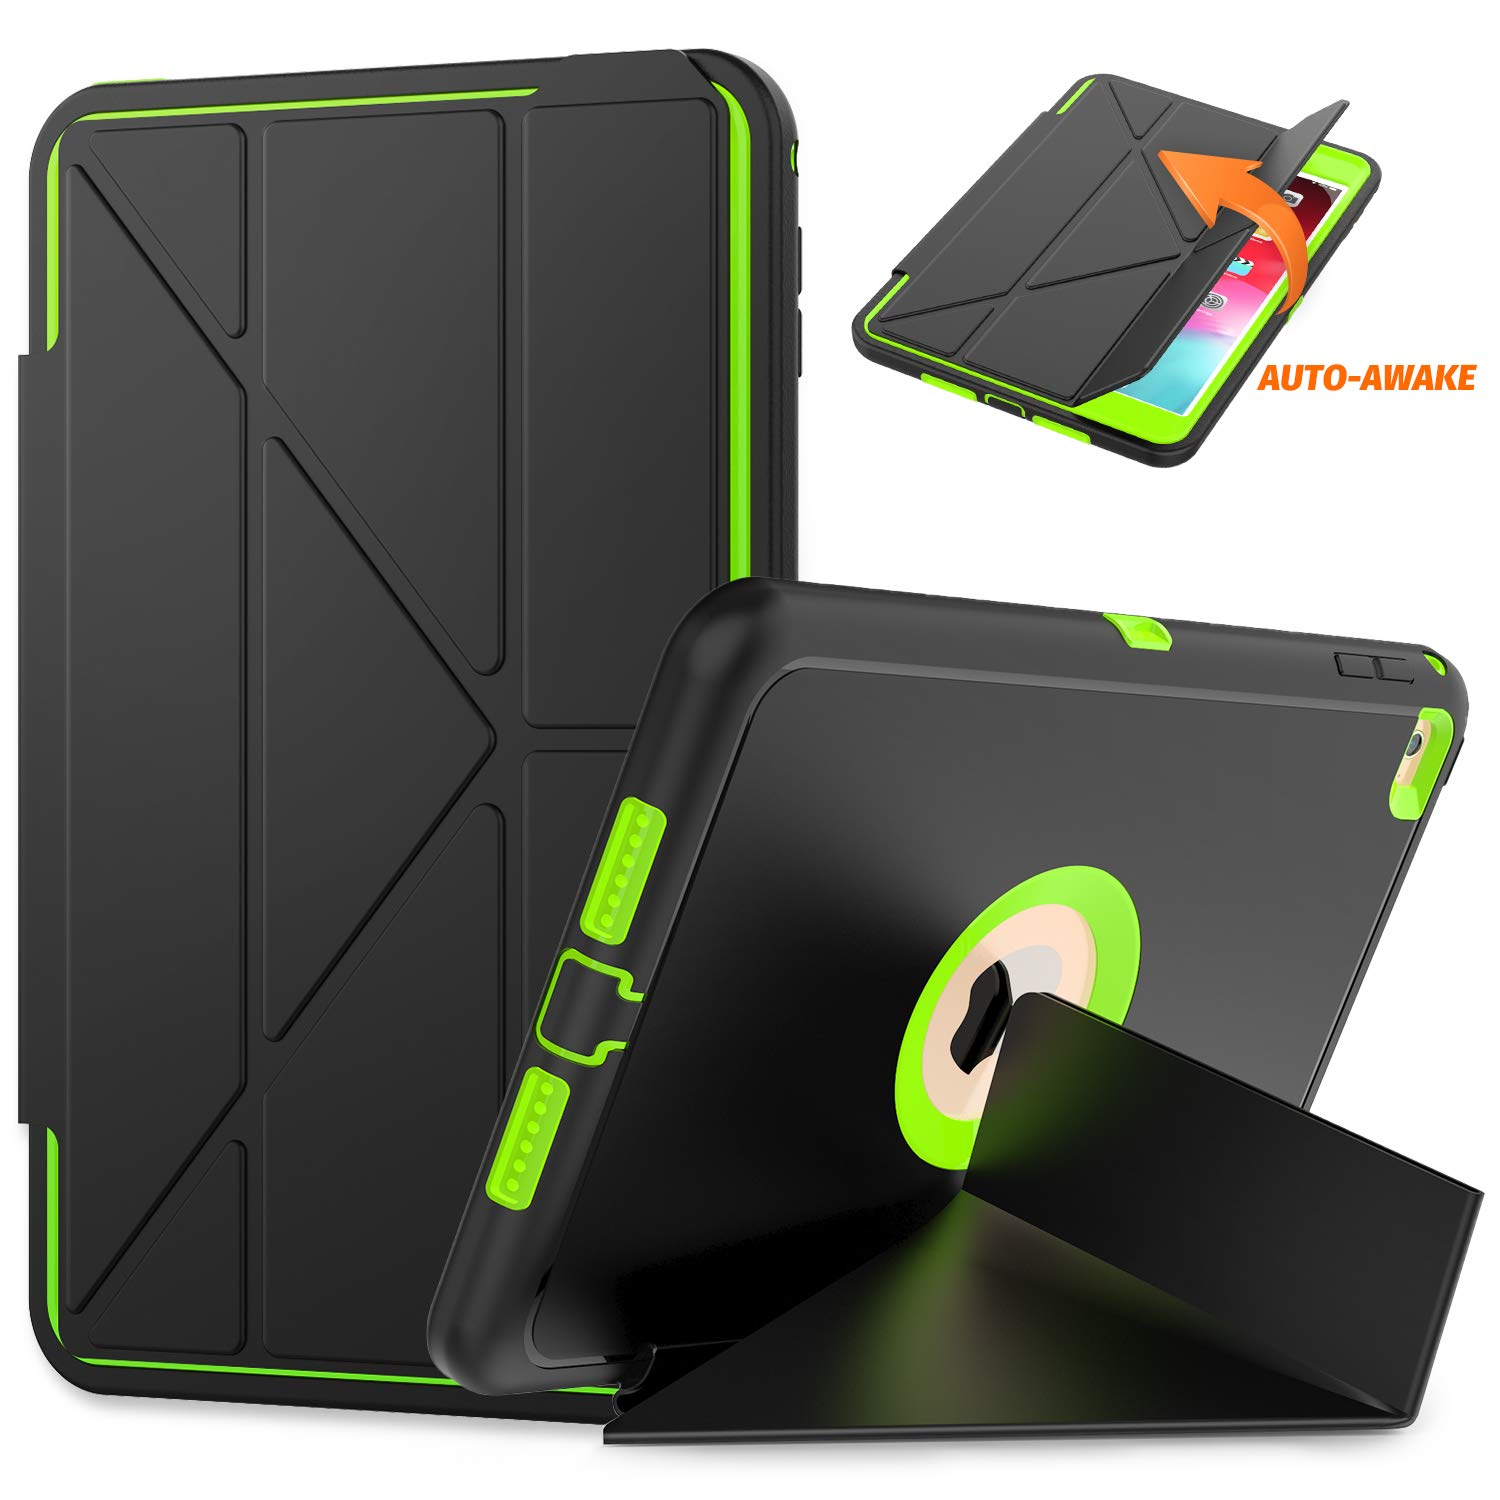 timecity Tablet Case for iPad Mini 4, iPad Smart Case 4th Generation, Protective Cover for iPad with Magnetic Auto Wake/Sleep (Fits iPad A1538,A1550 7.9 Inch 2015 Release), Black/Green